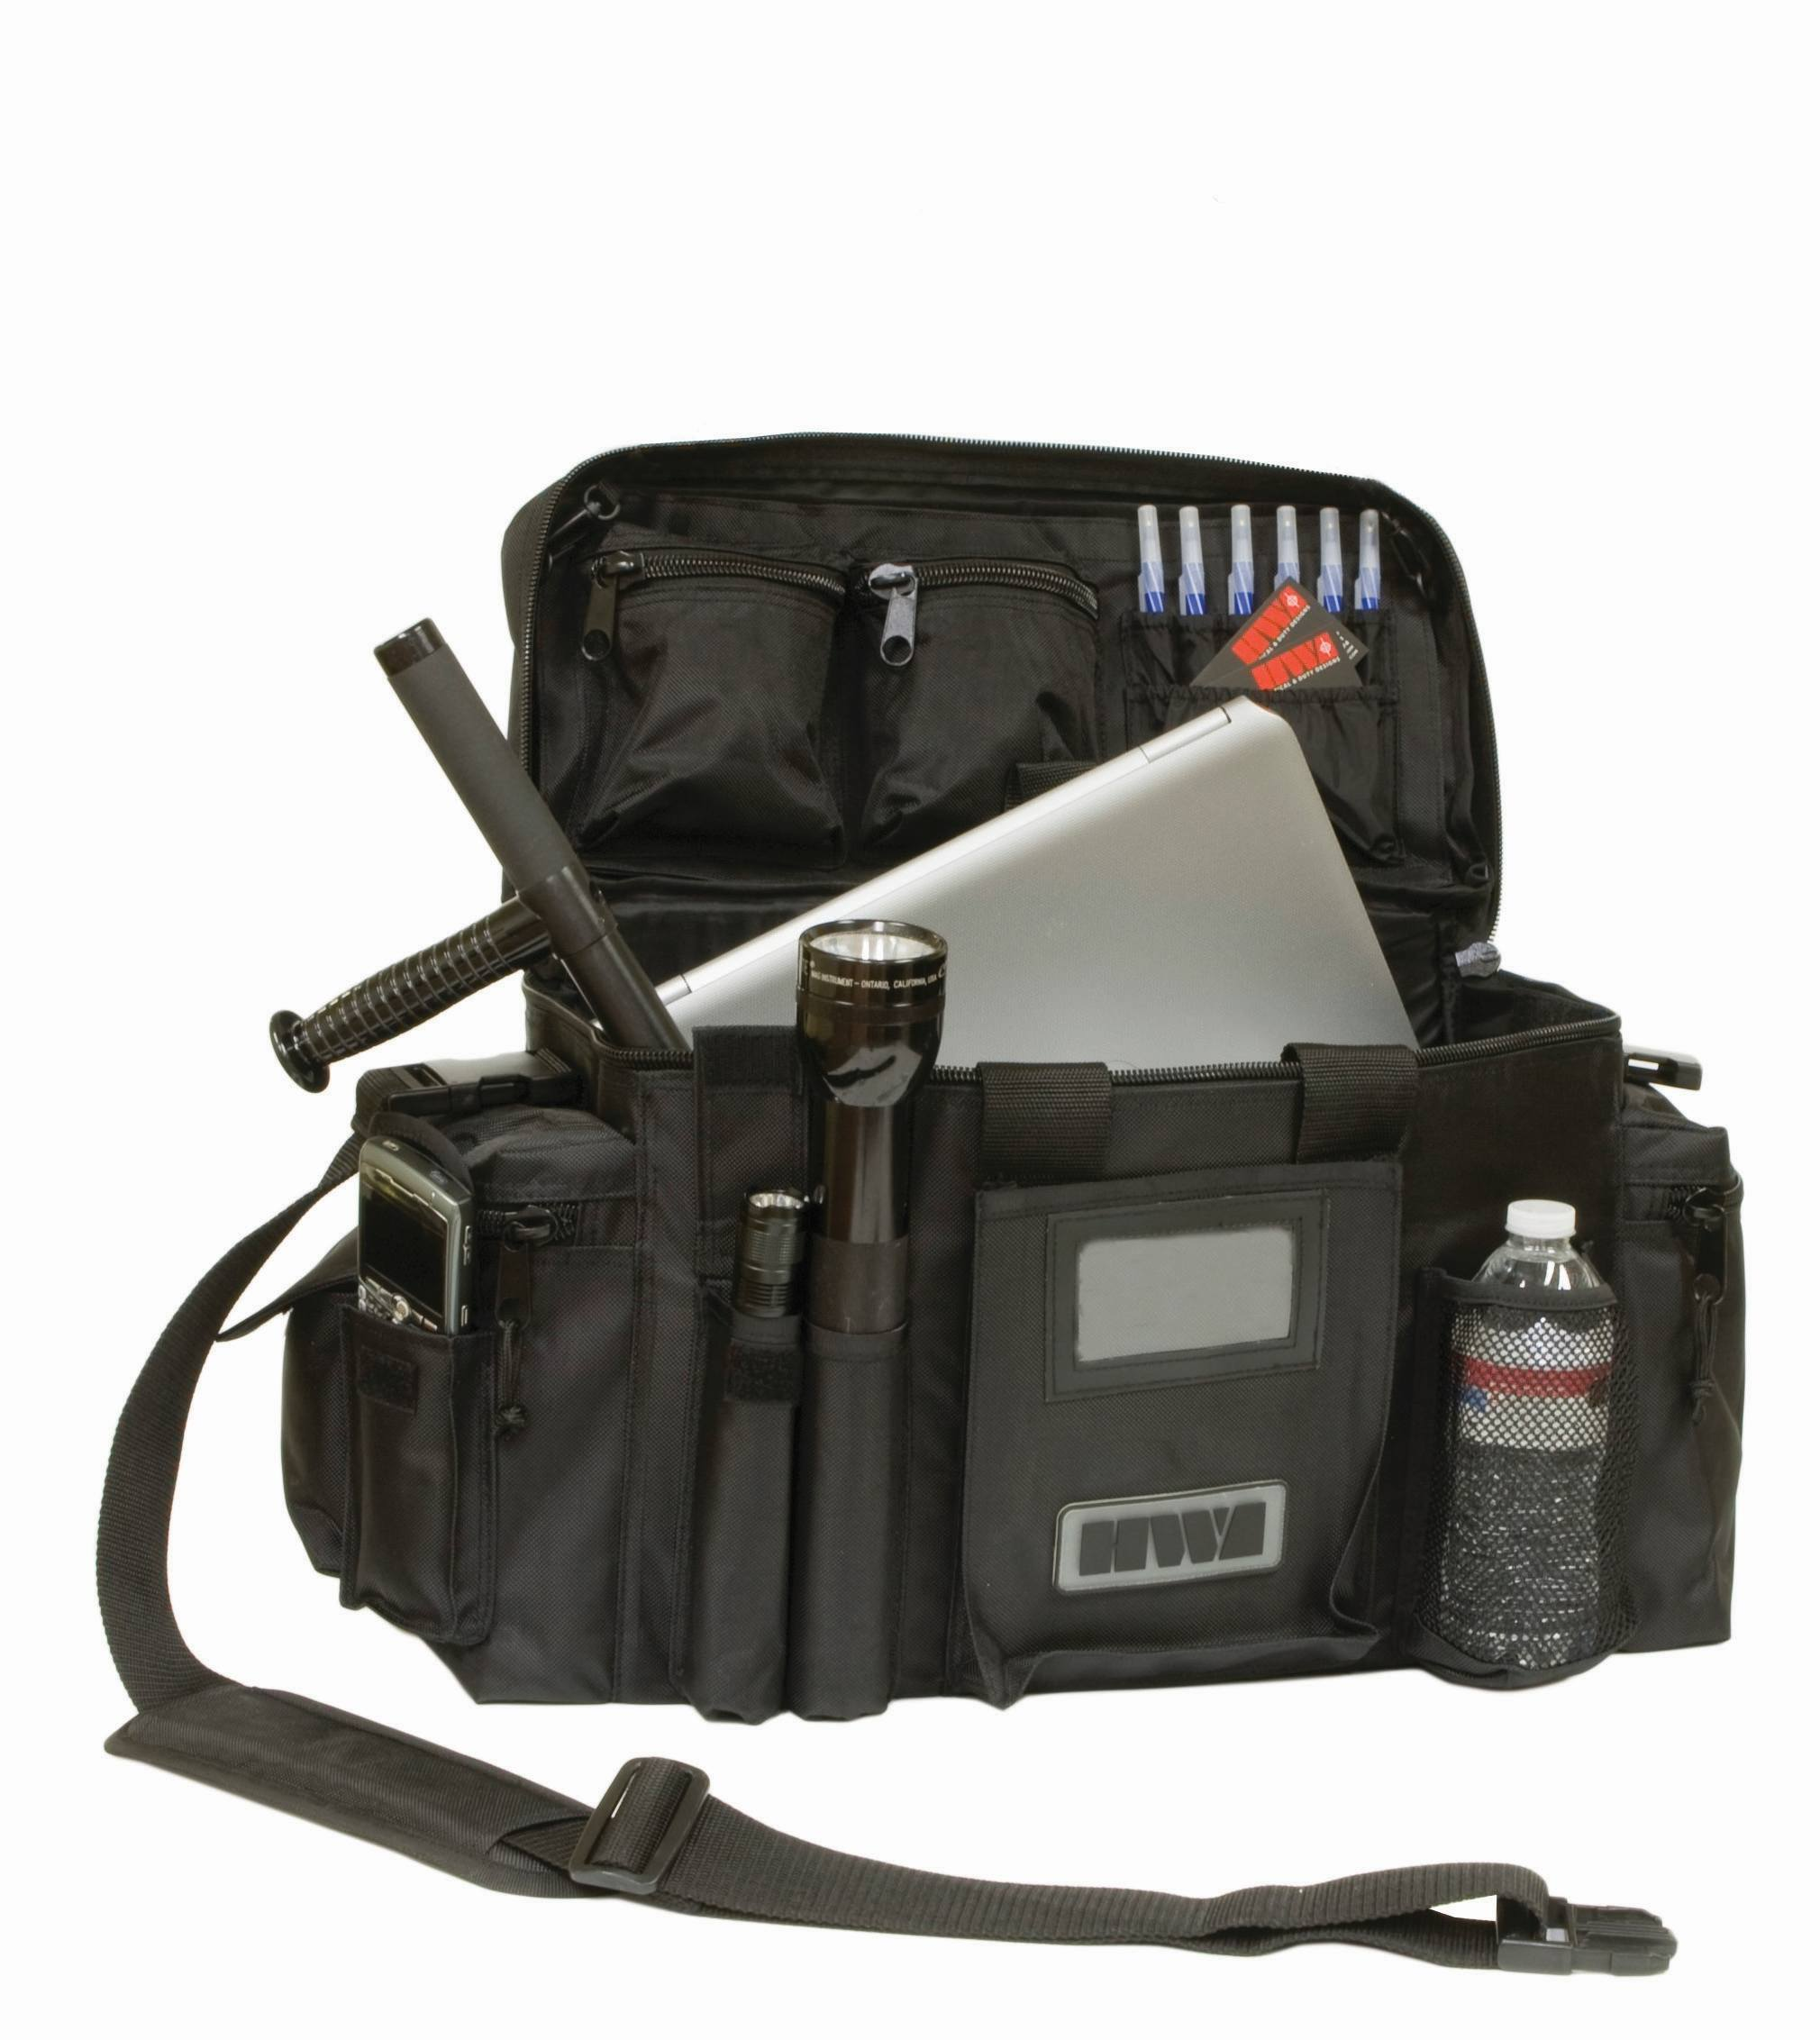 Duty Bag, Deluxe, Black, HWI